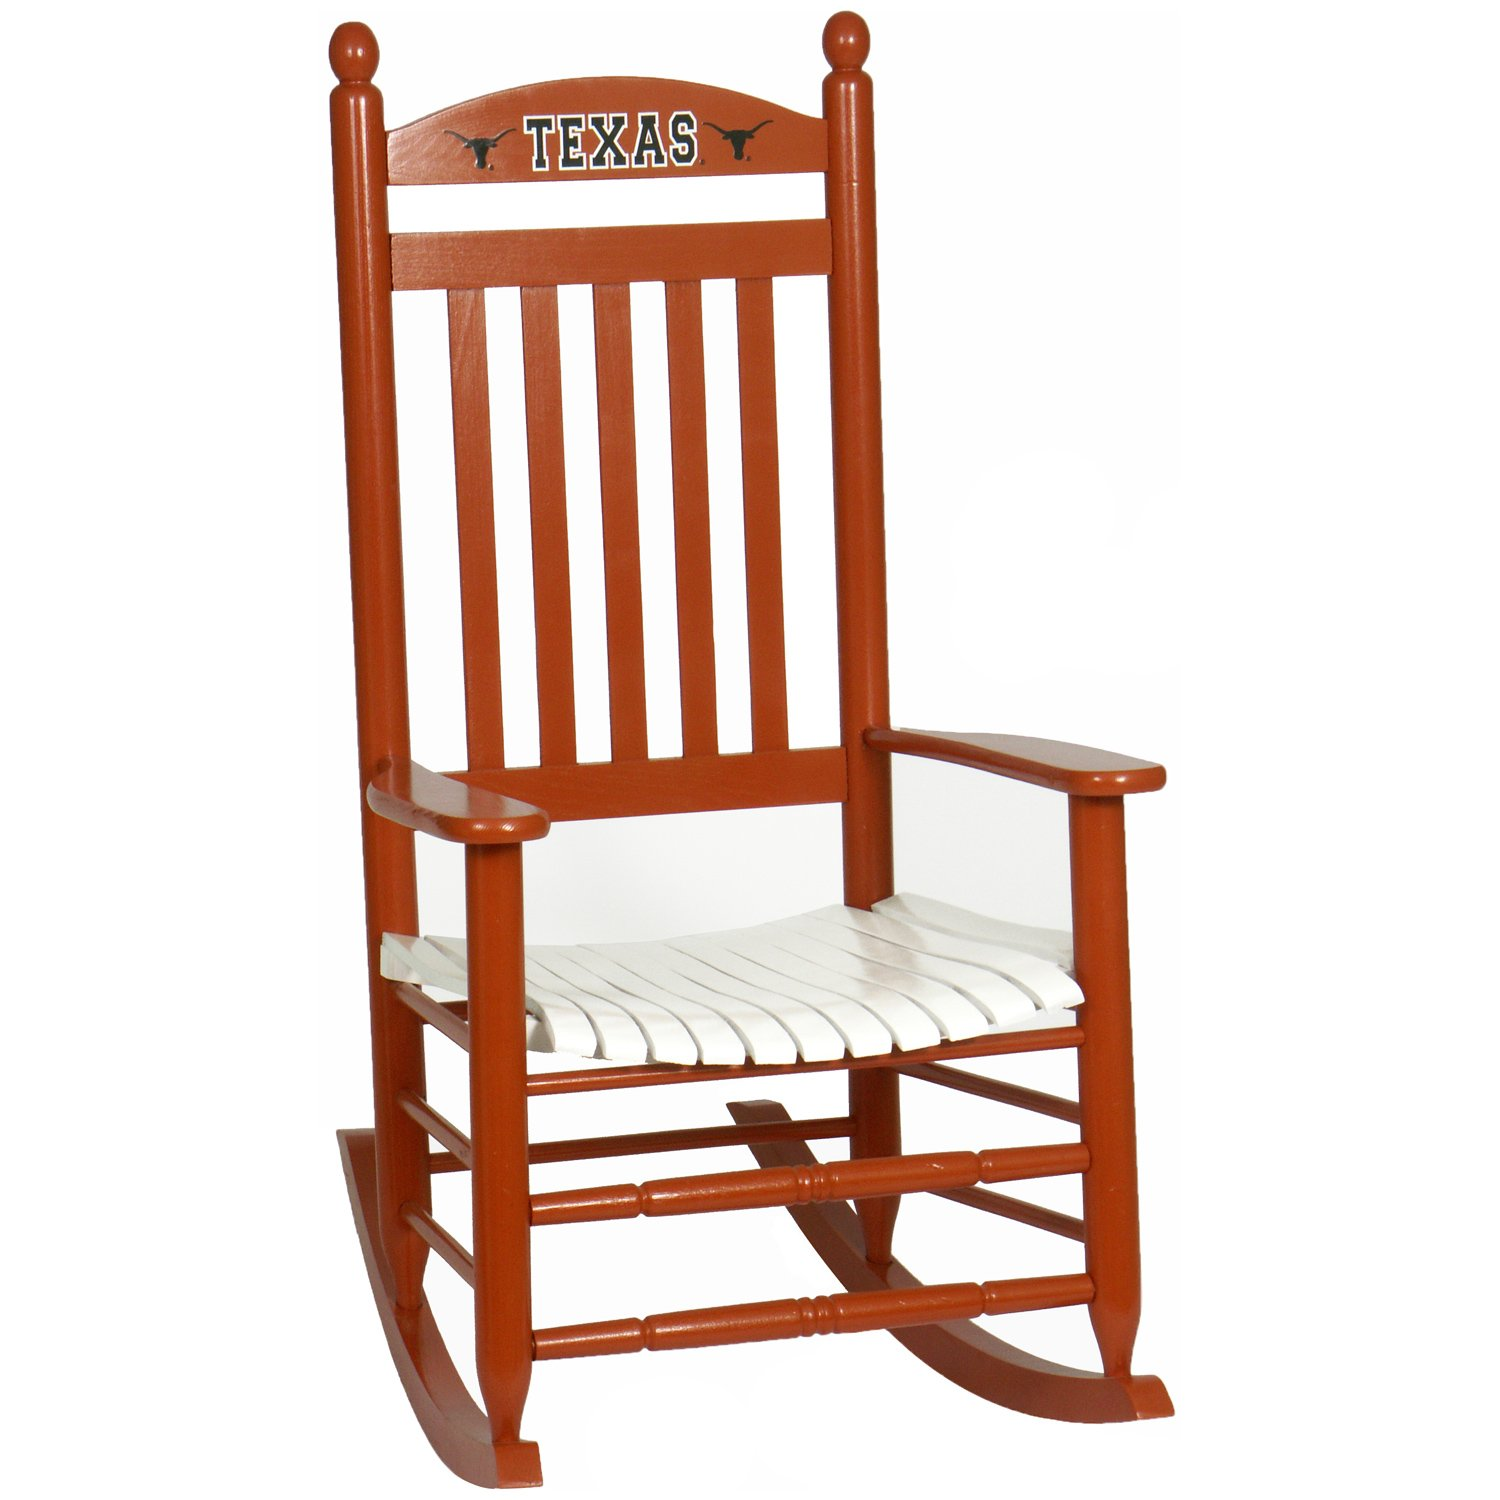 Pleasing Amazon Com Texas Longhorns Painted Wood Rocking Chair In Unemploymentrelief Wooden Chair Designs For Living Room Unemploymentrelieforg